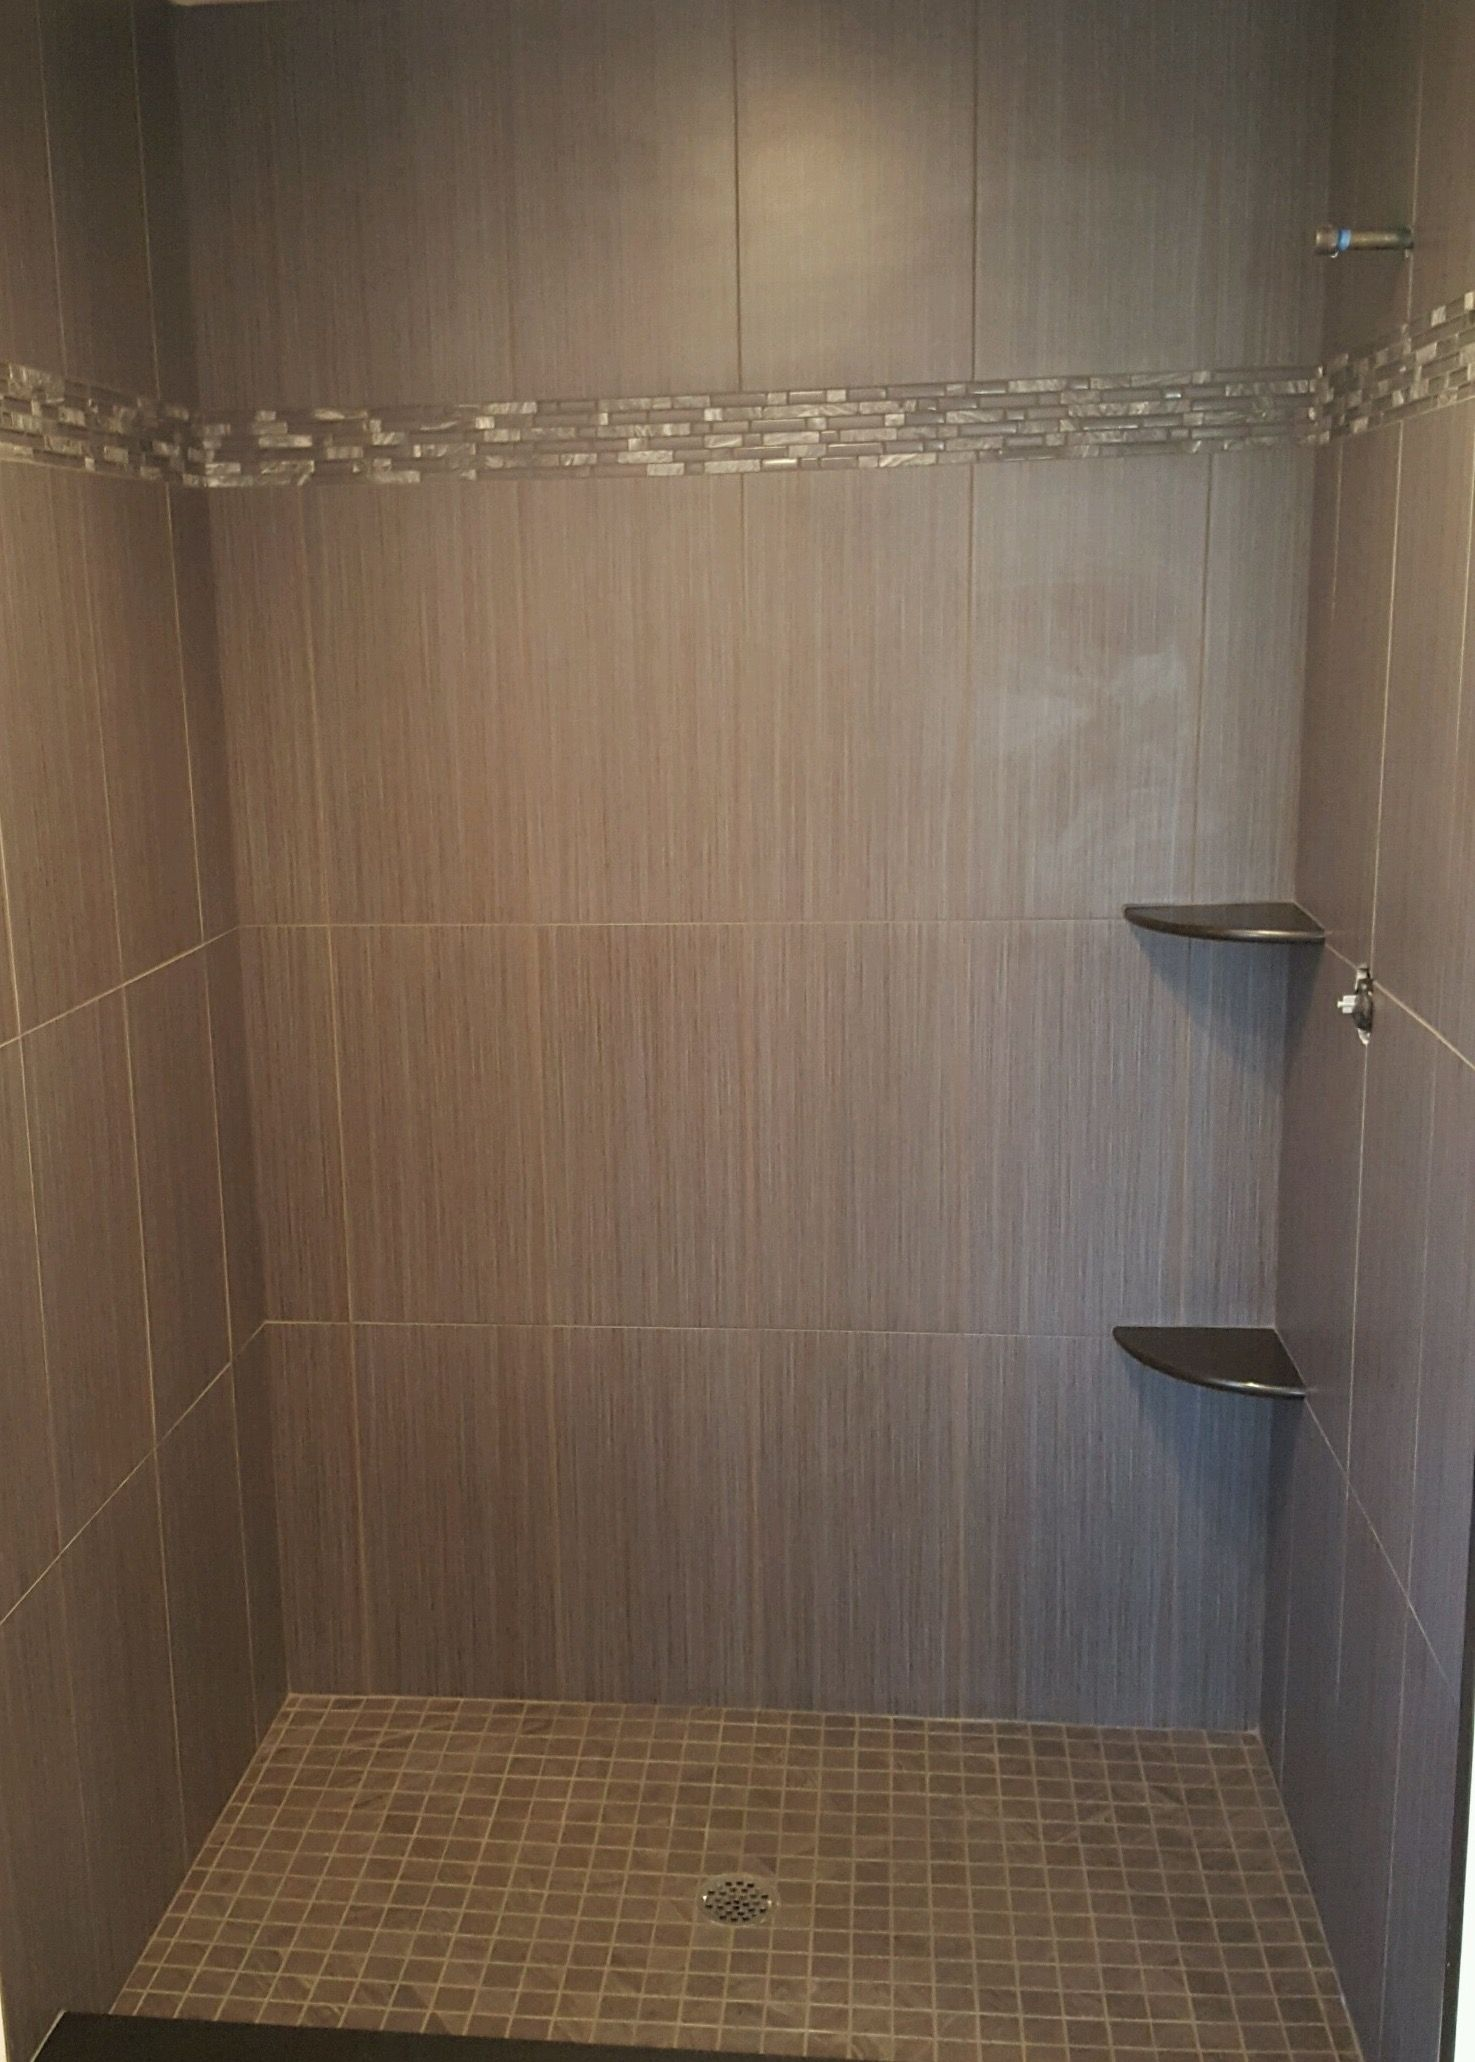 Pretty 12 X 12 Ceiling Tiles Big 18X18 Floor Tile Patterns Regular 2 X 2 Ceramic Tile 24 Ceramic Tile Youthful 2X2 Suspended Ceiling Tiles Coloured2X2 White Ceramic Tile Grey Ceramic Tile In A Shower Done Vertically With Mosaic Glass ..